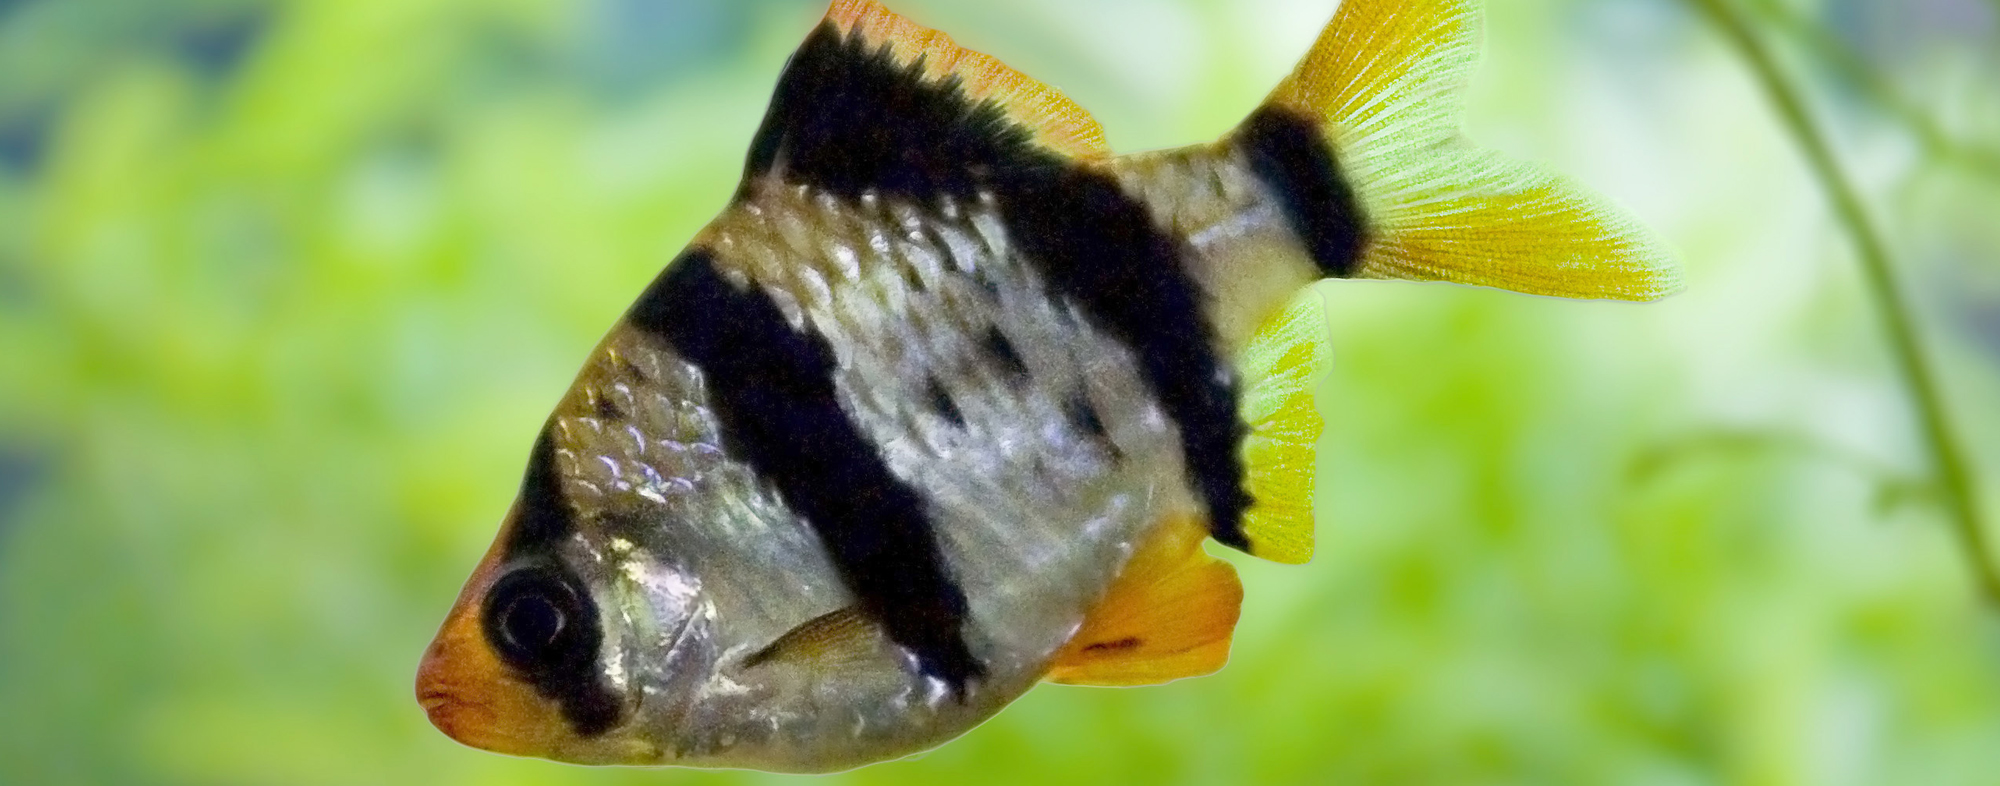 Introducing a new fish species to your tank, beware of aggression